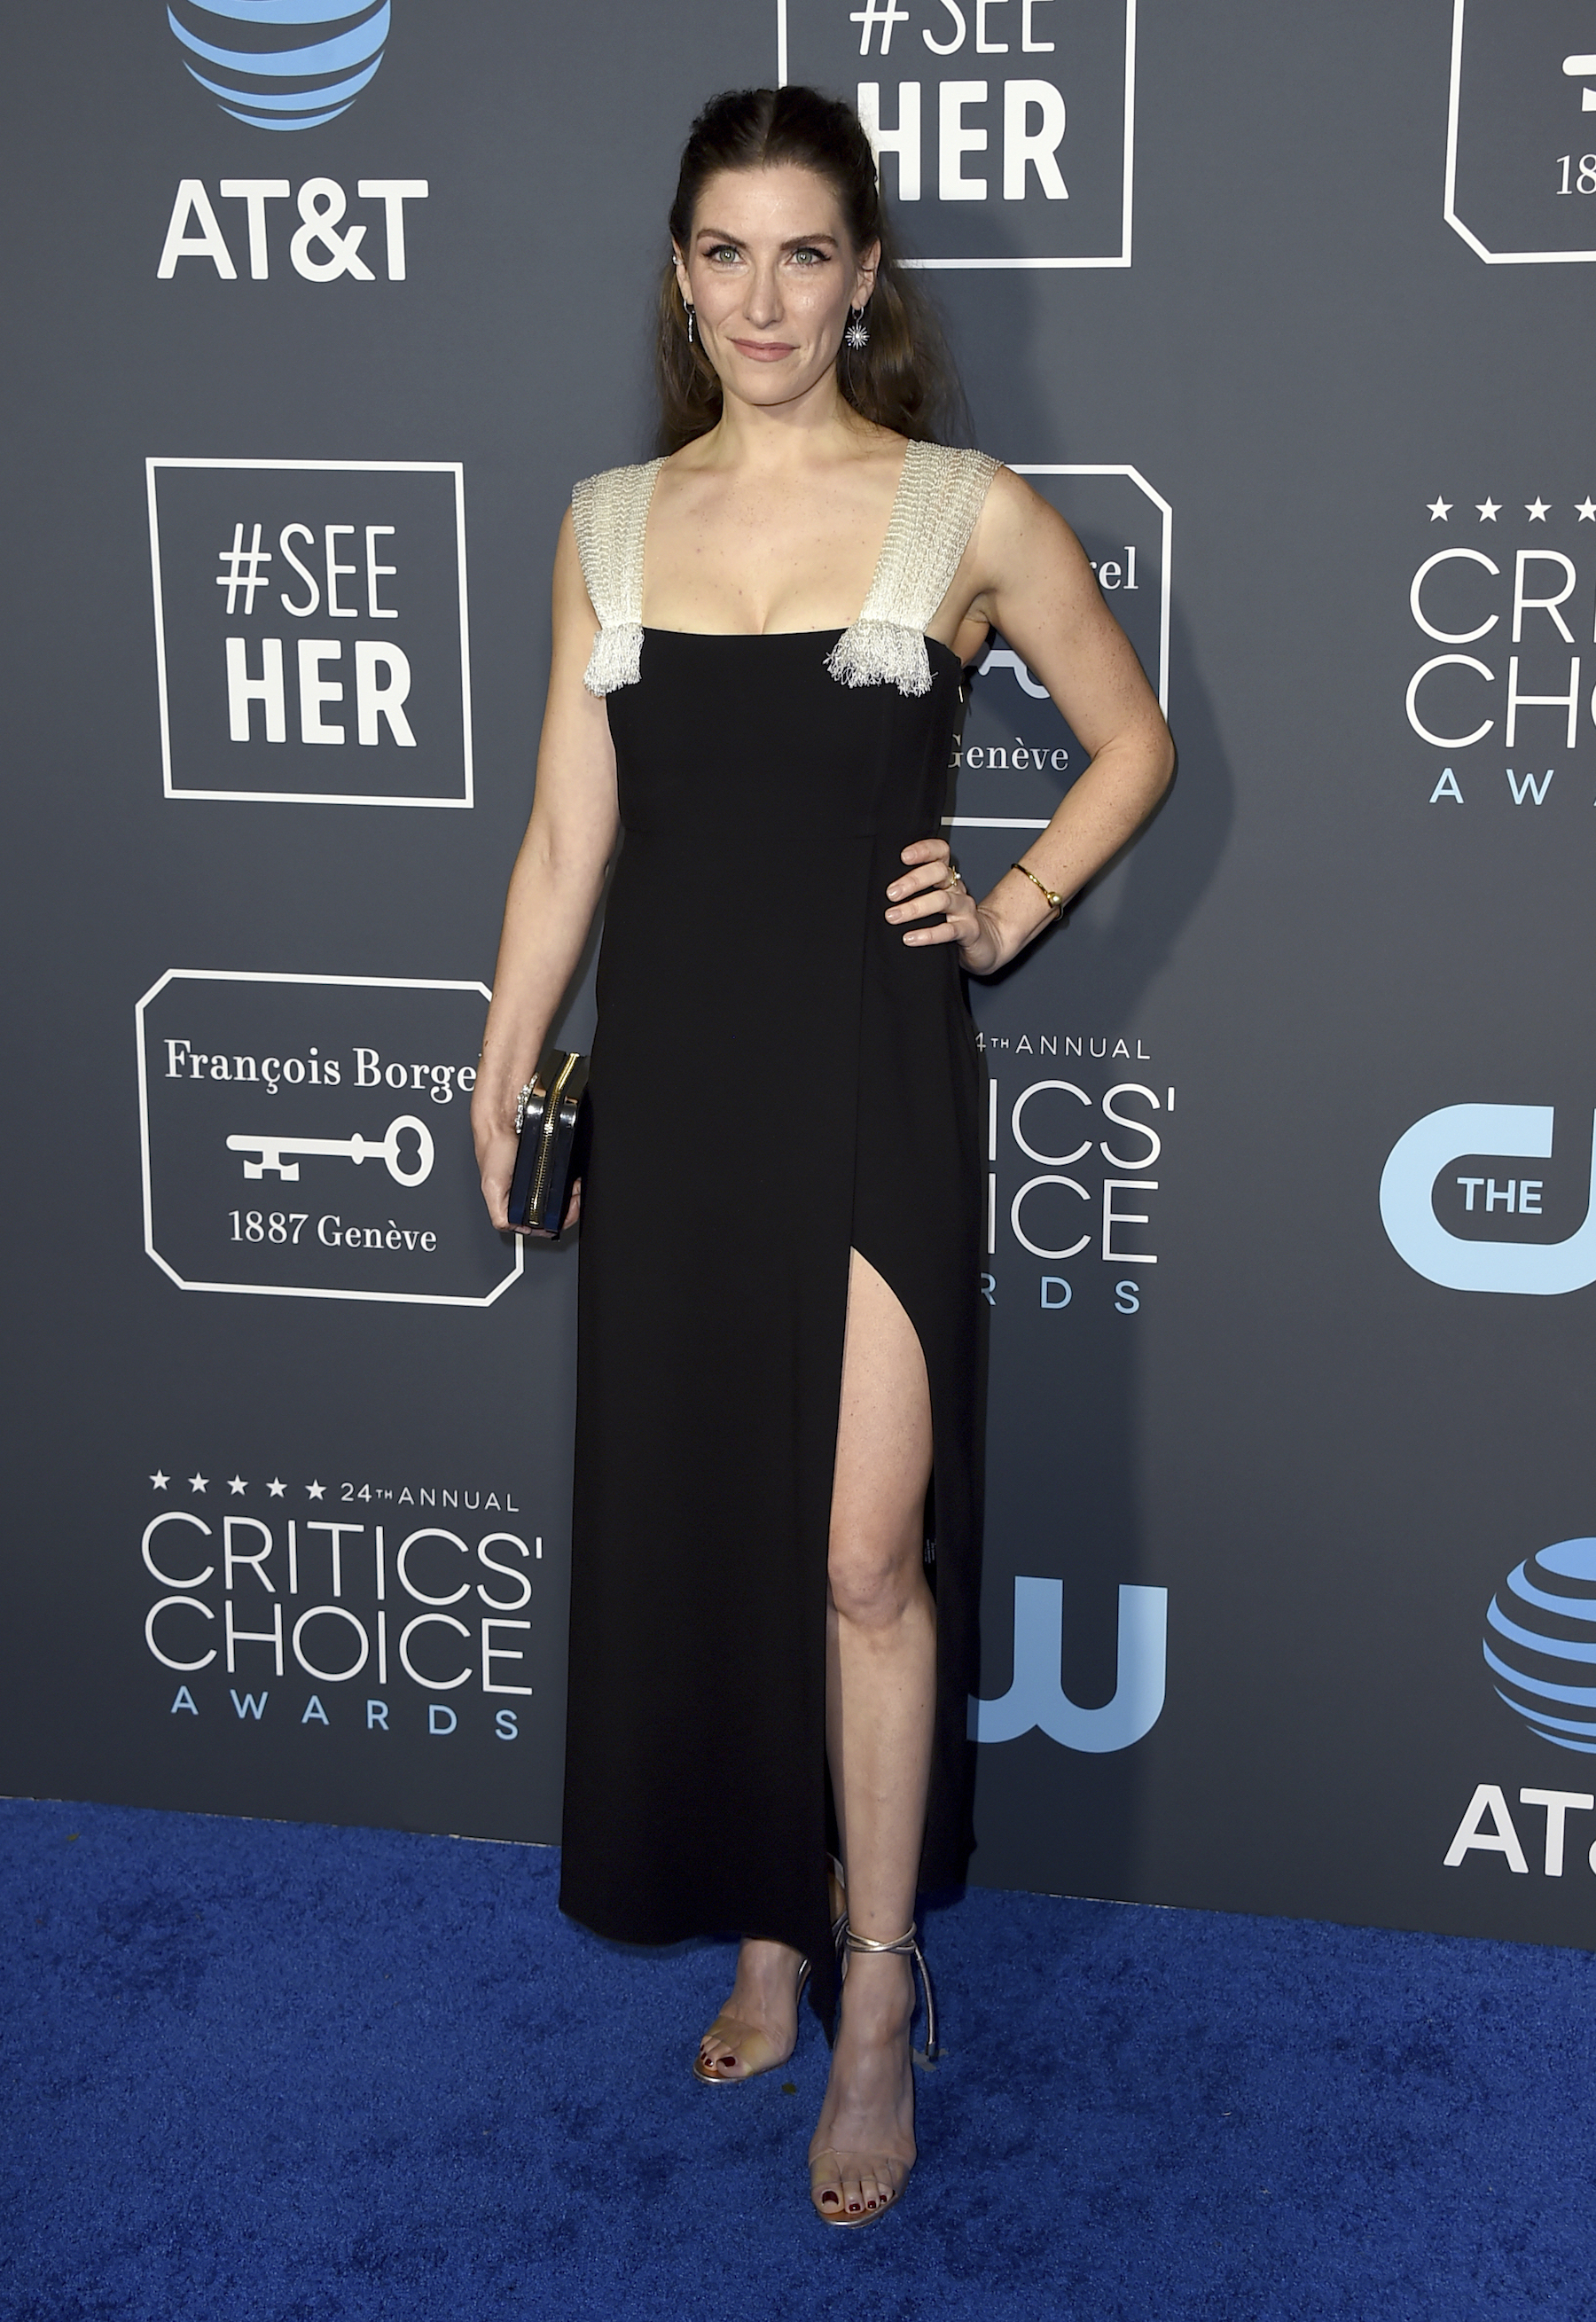 <div class='meta'><div class='origin-logo' data-origin='AP'></div><span class='caption-text' data-credit='Jordan Strauss/Invision/AP'>Sarah Levy arrives at the 24th annual Critics' Choice Awards on Sunday, Jan. 13, 2019, at the Barker Hangar in Santa Monica, Calif.</span></div>